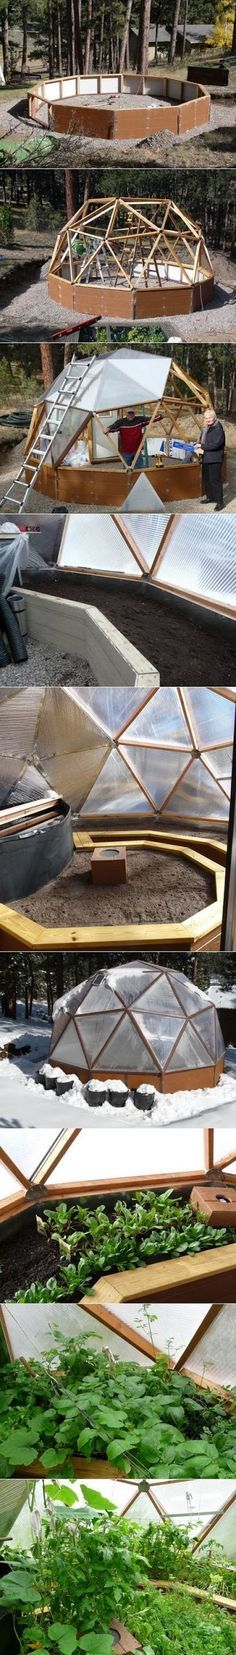 Geodesic Dome Greenhouse - helped some friends of mine do the finishing touches. Beware those angles!